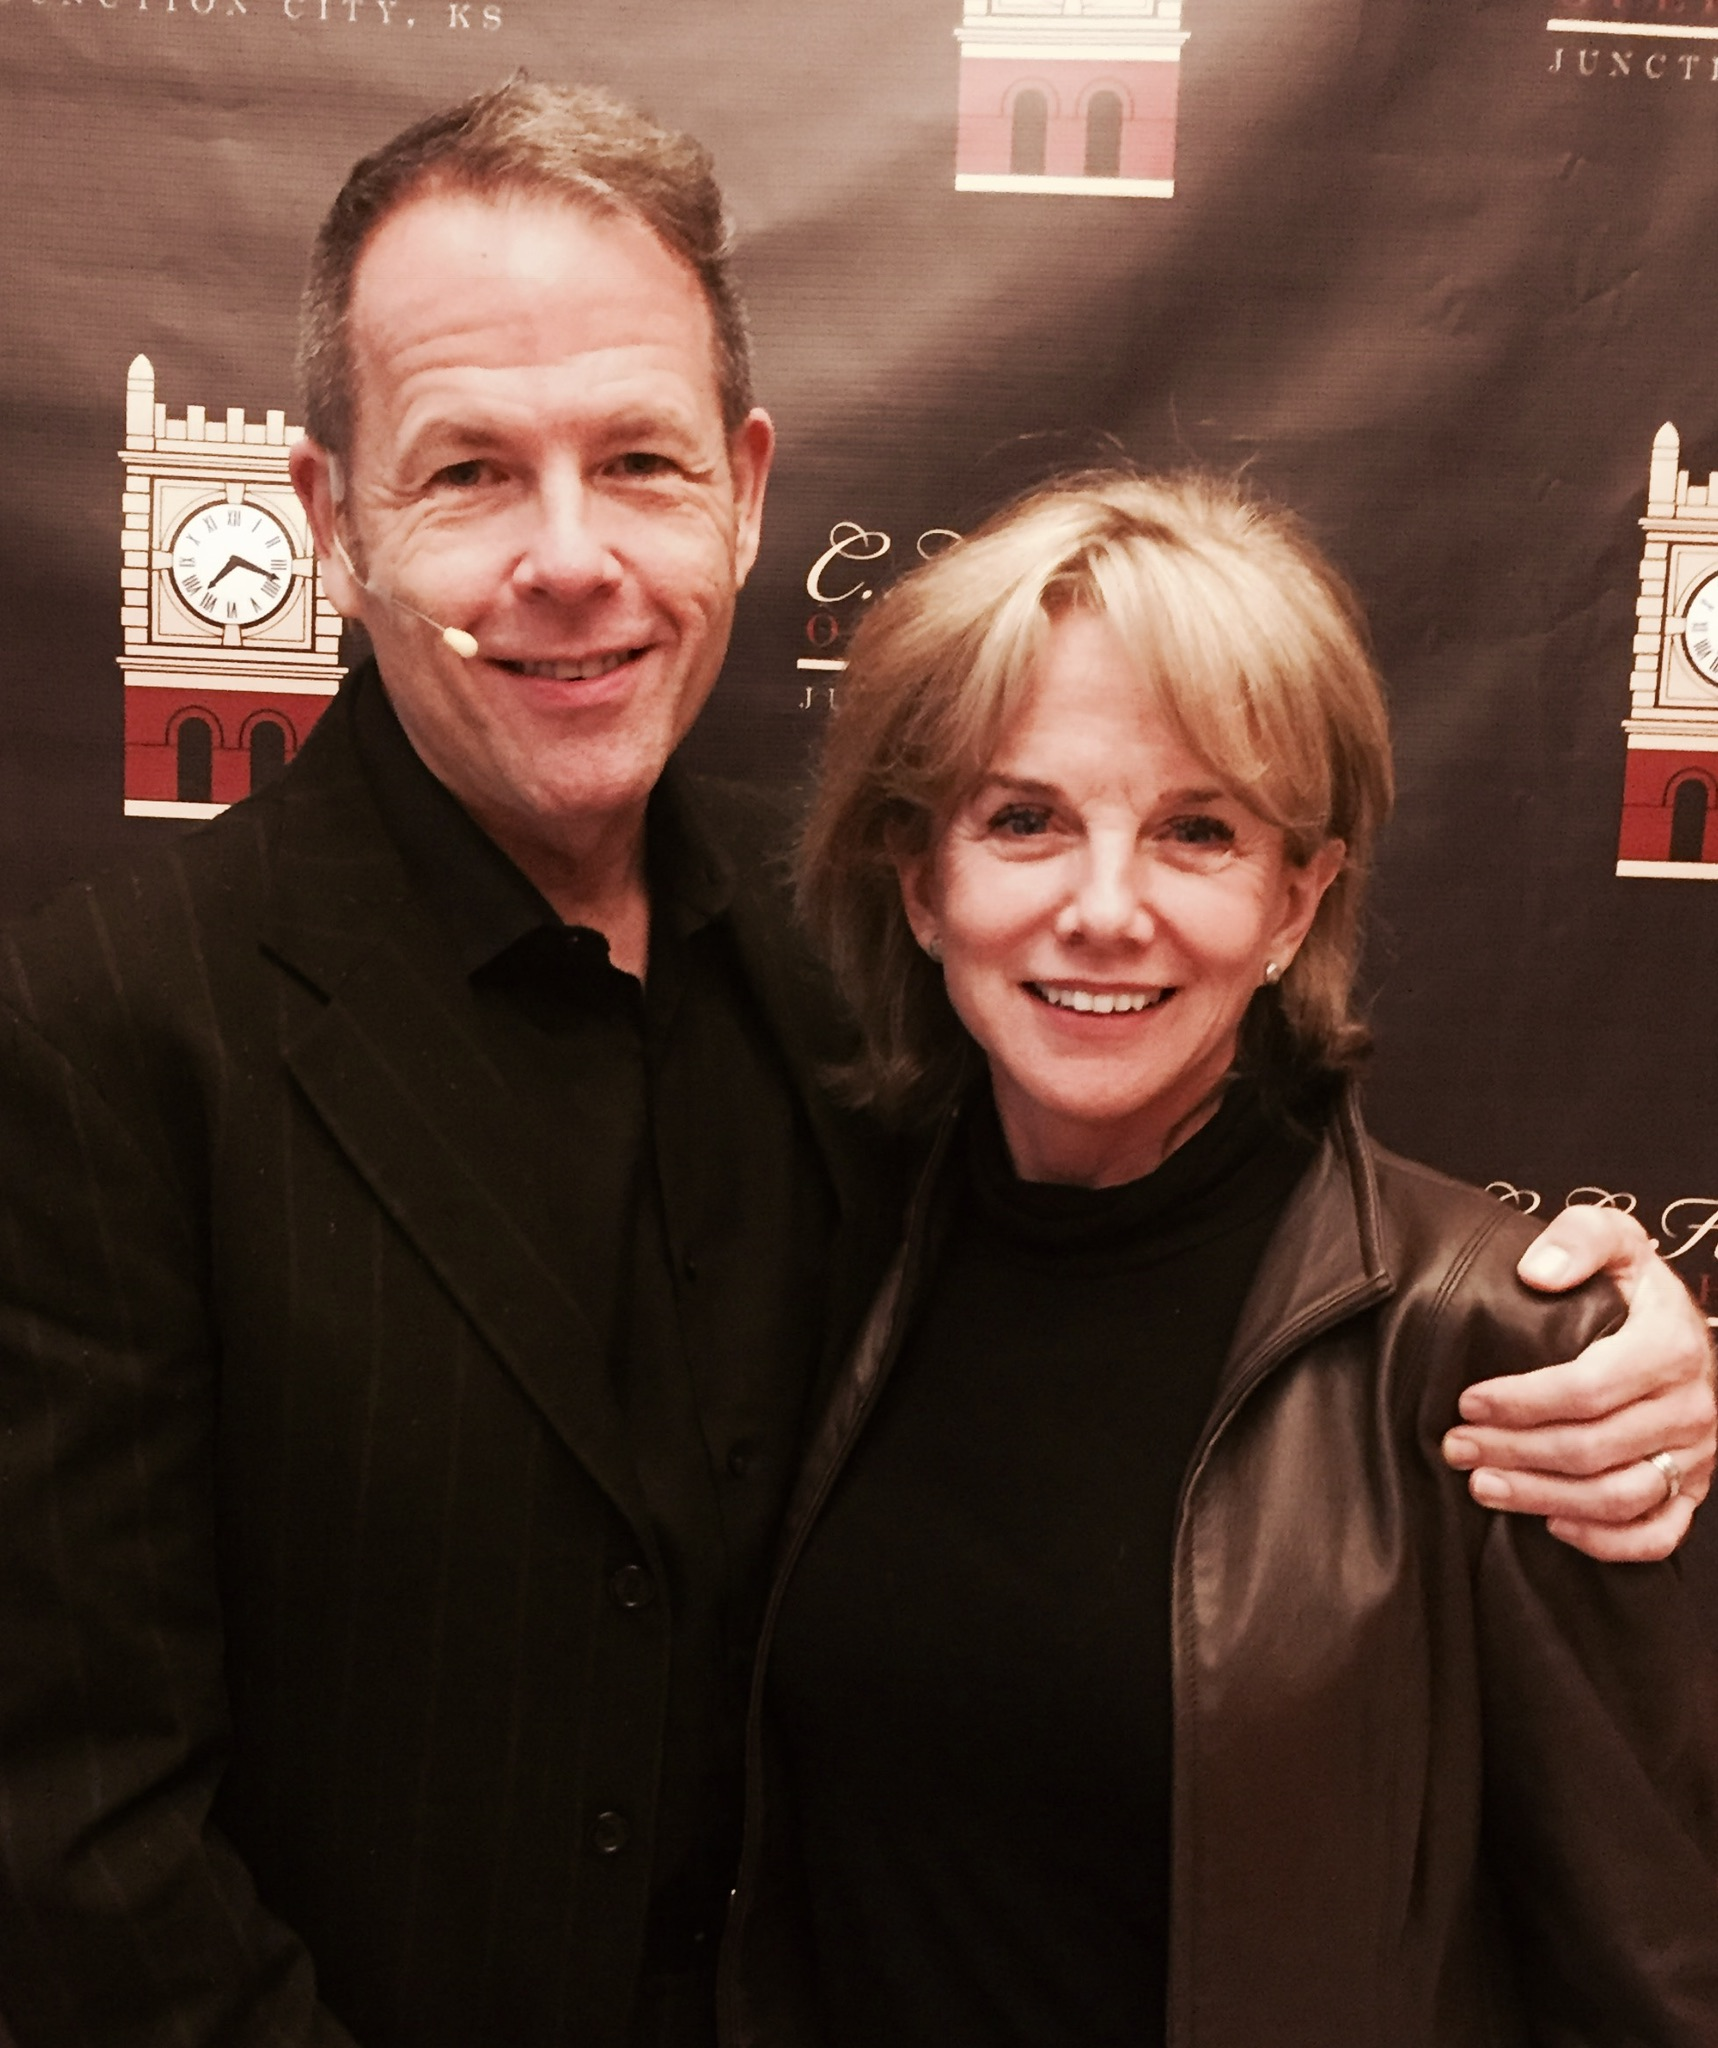 Emcee Greg Triggs with Linda Purl post-show